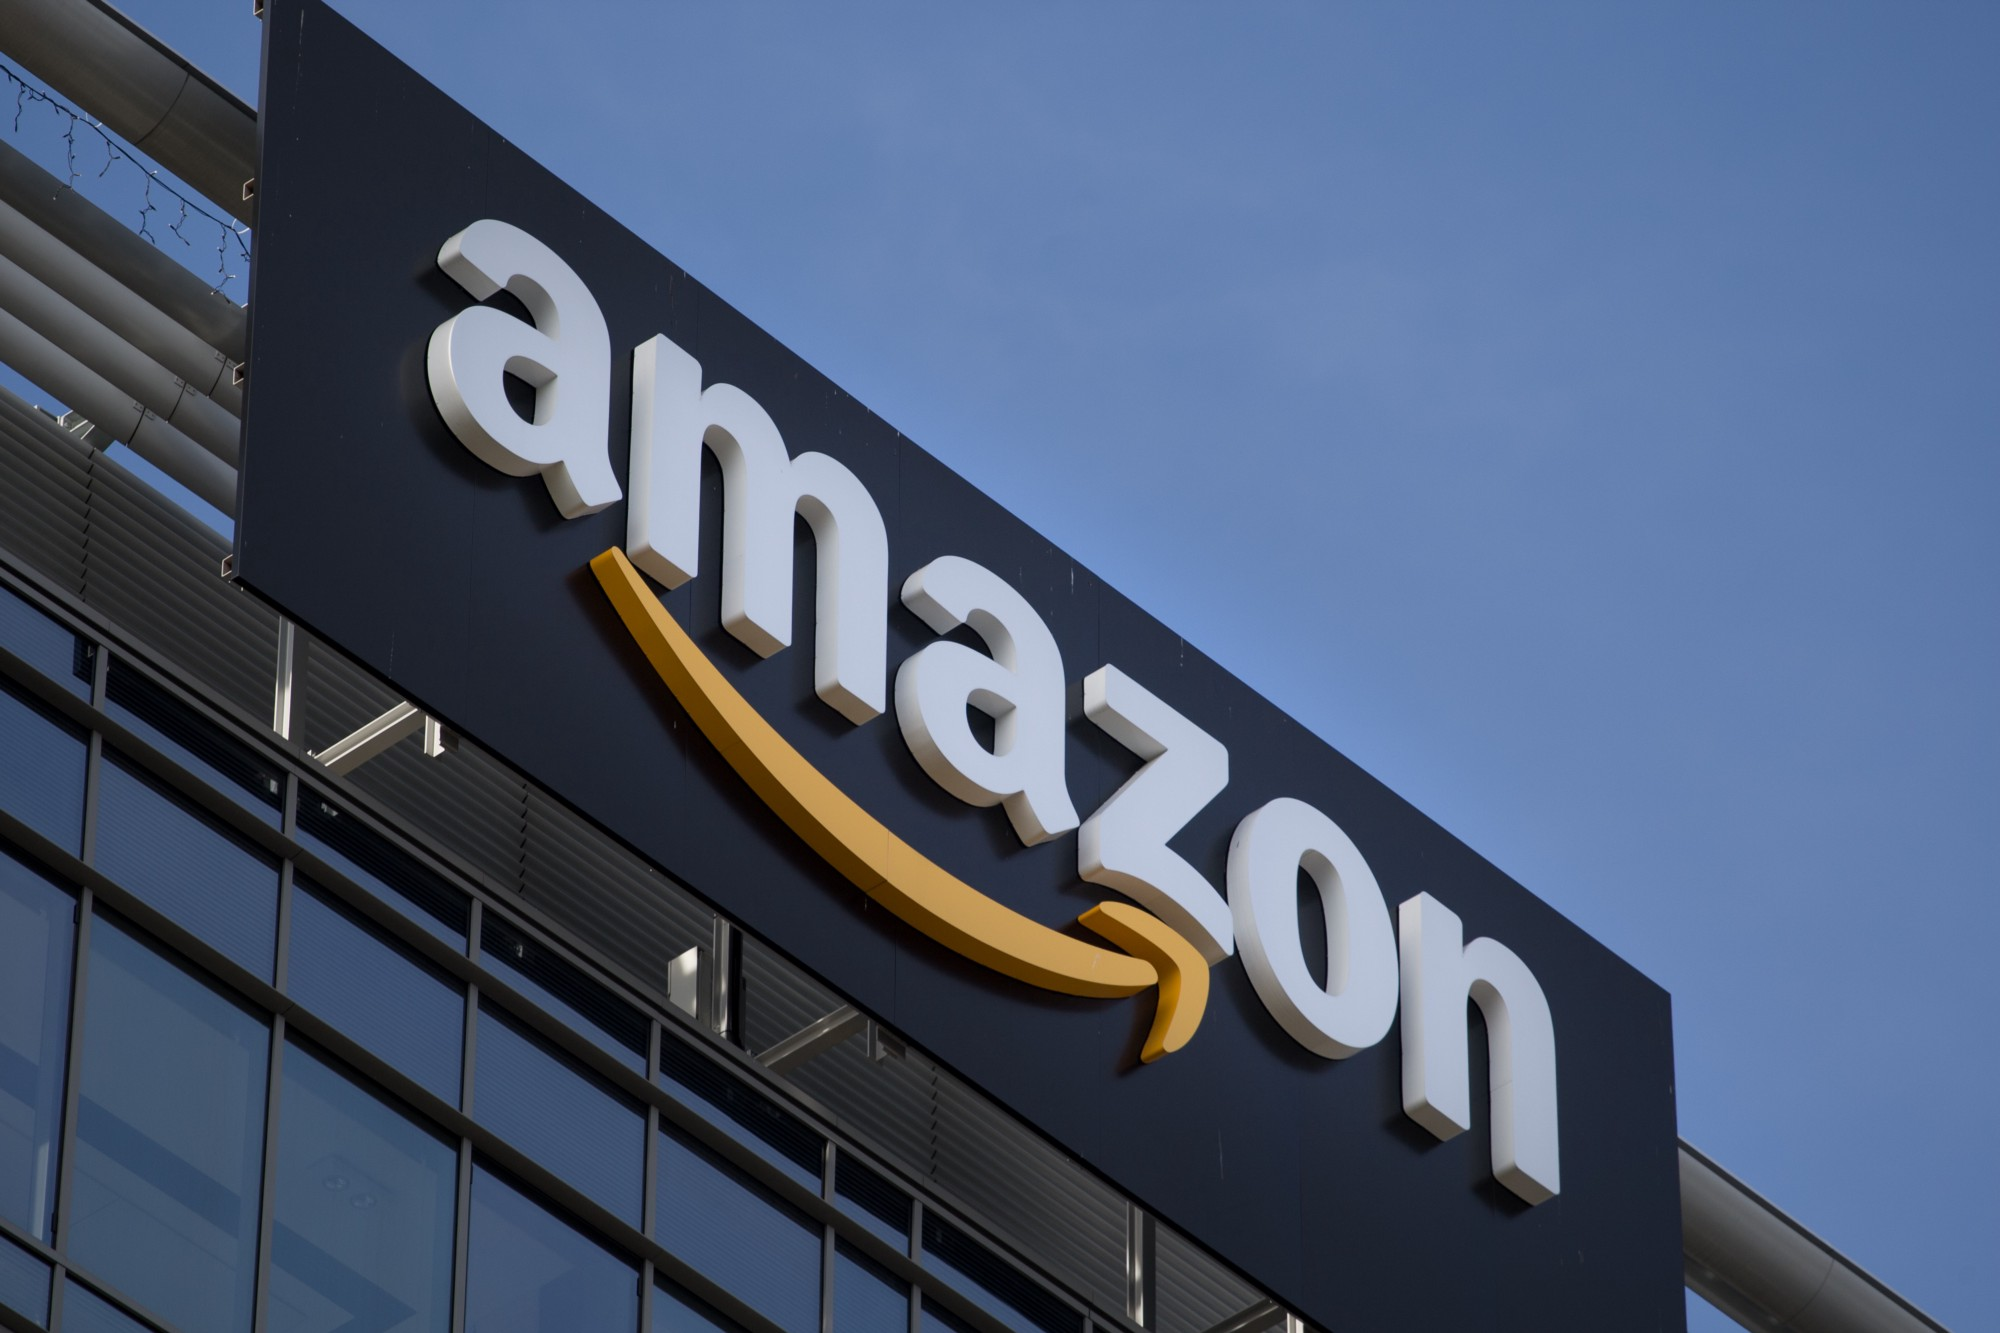 Amazon Off Campus Drive Hiring Freshers As Associate For B E